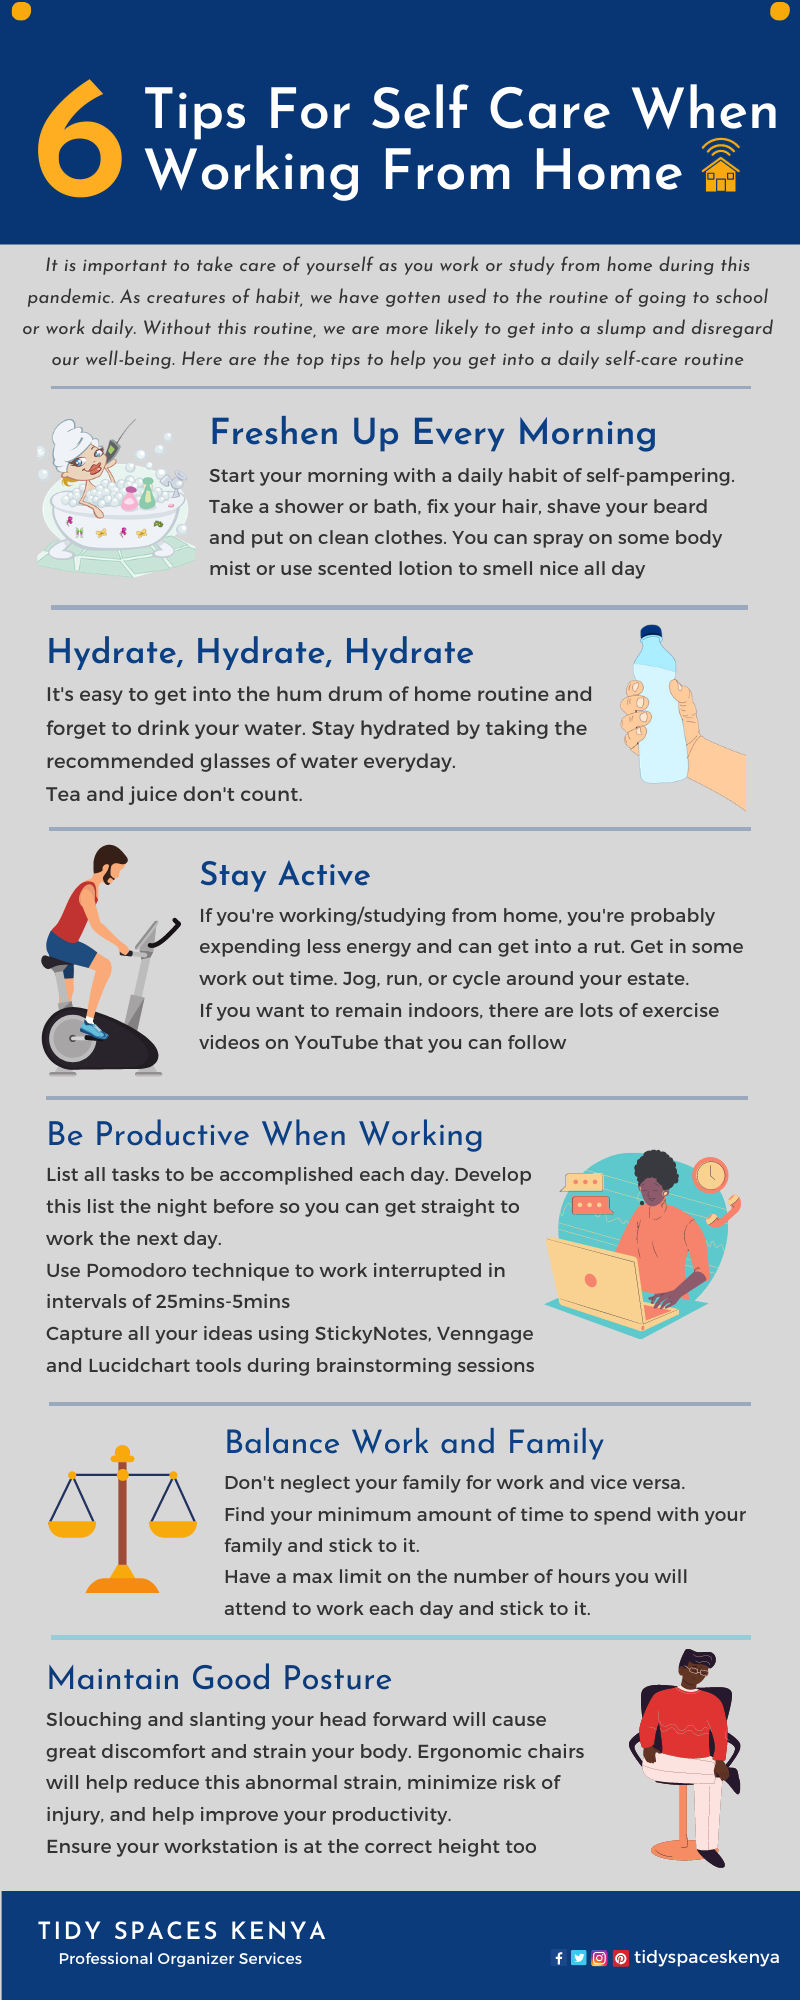 6 tips for self care when working from home: freshen up daily; hydrate; stay active; be productive; balance and good posture